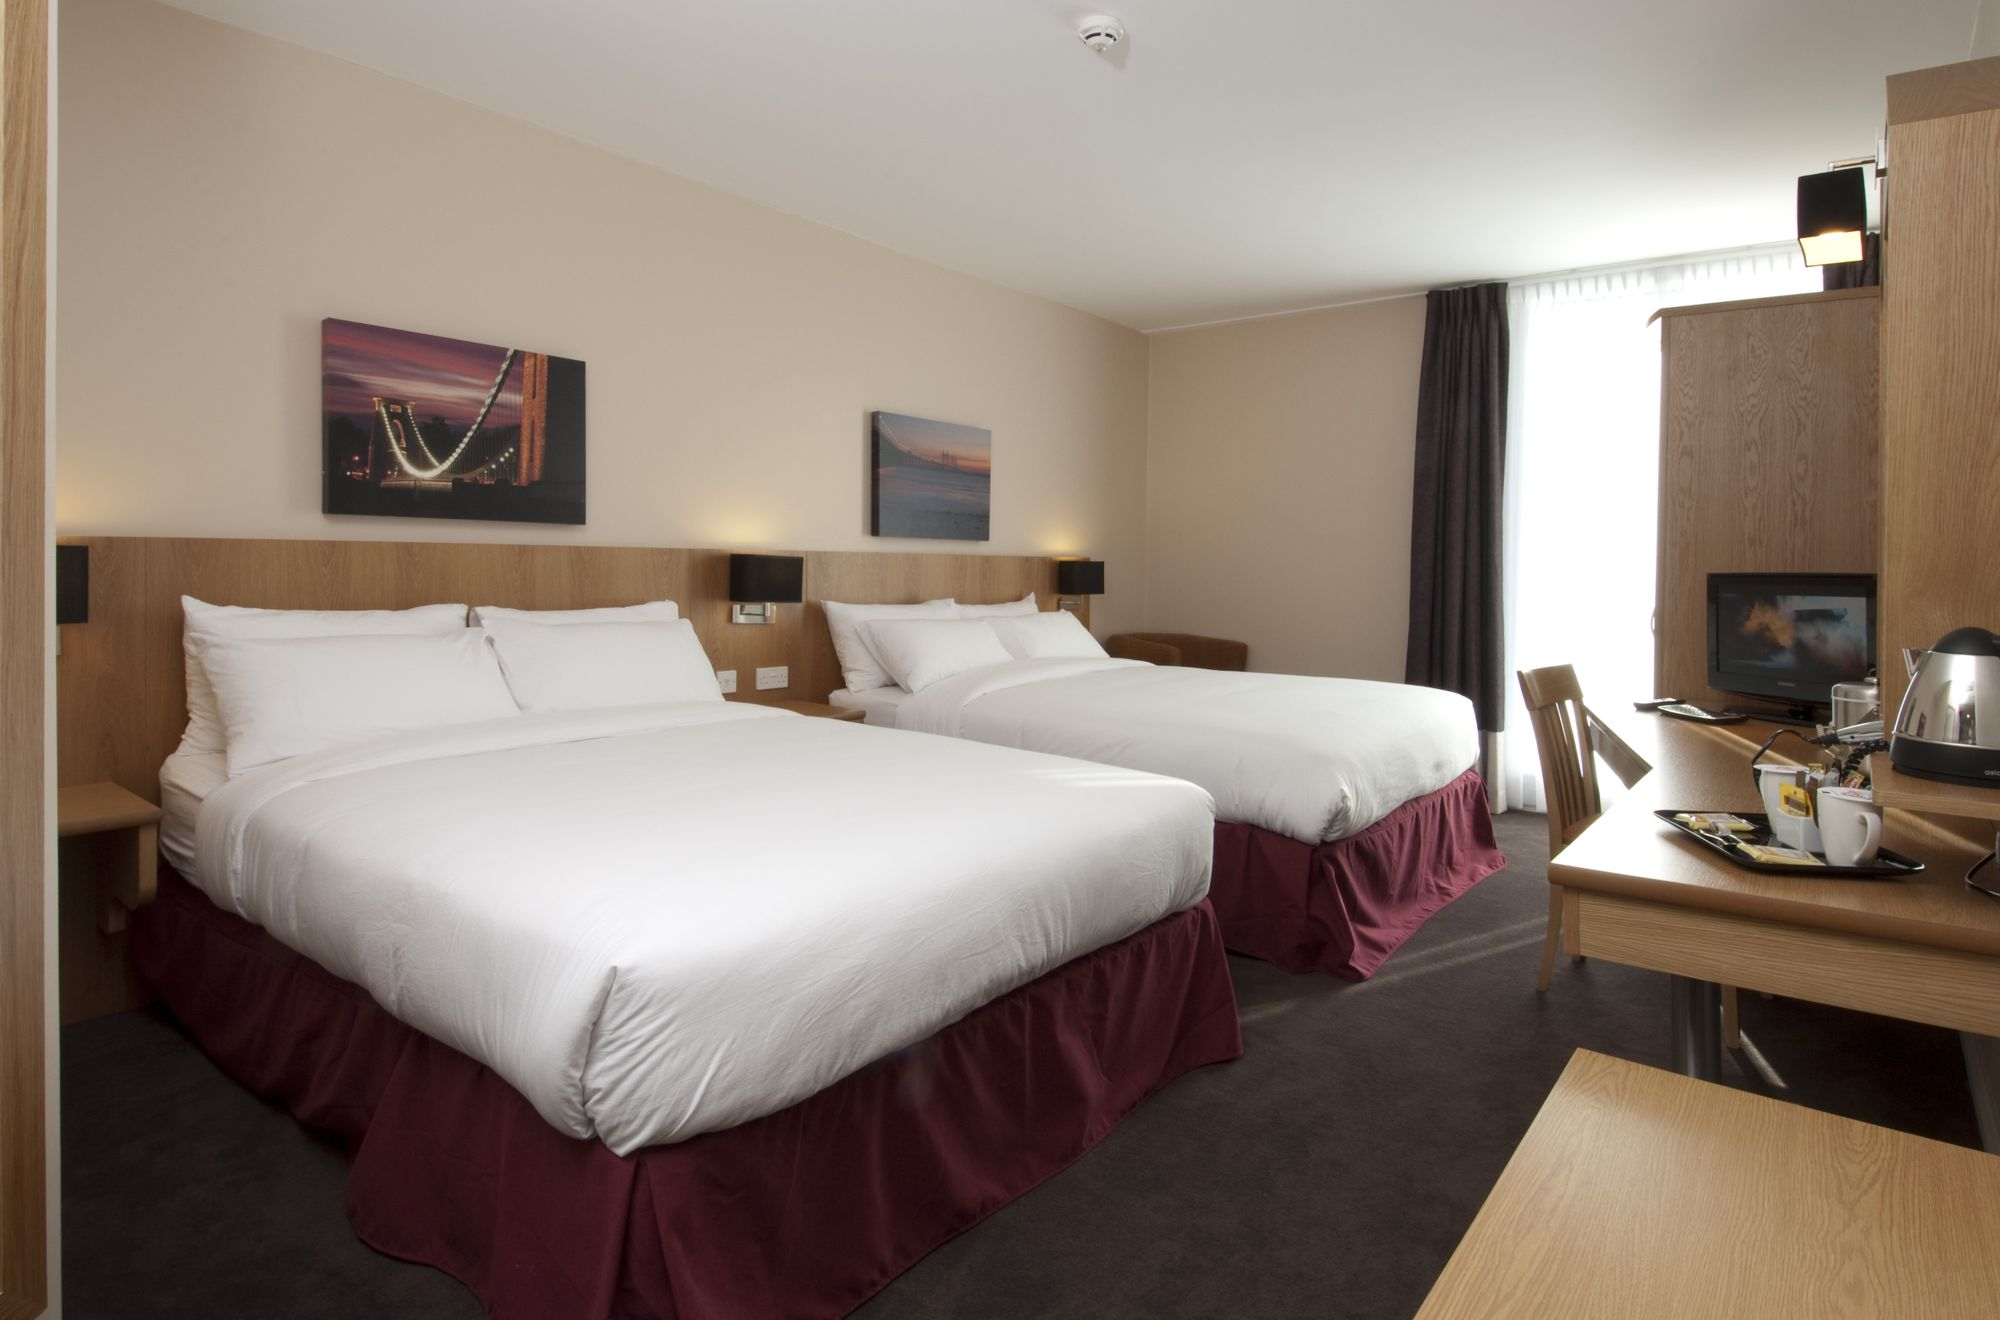 Hotels in Bristol holidays at Cool Places